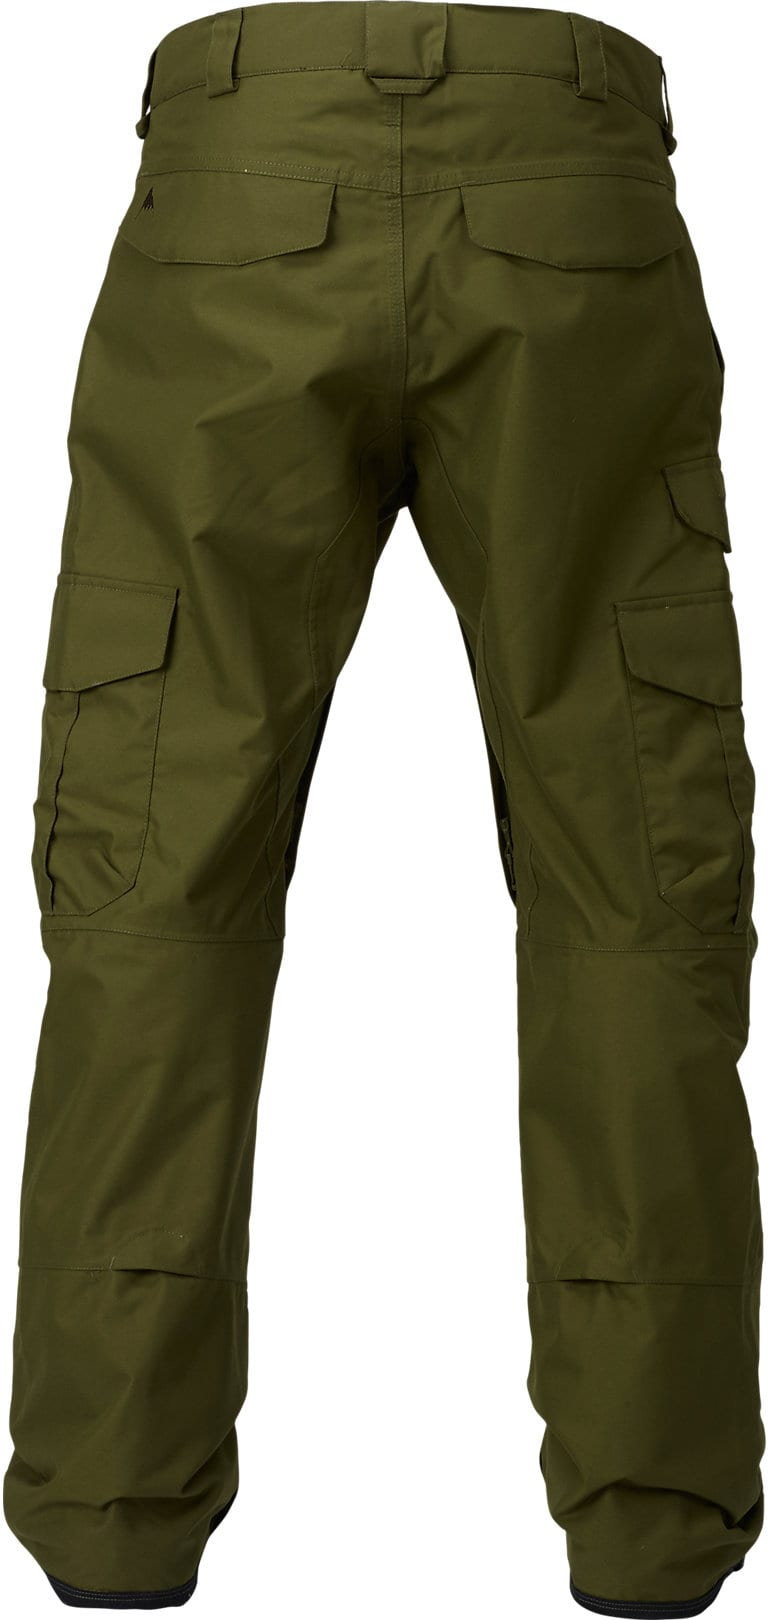 On Sale Burton Cargo Tall Snowboard Pants Up To 40 Off